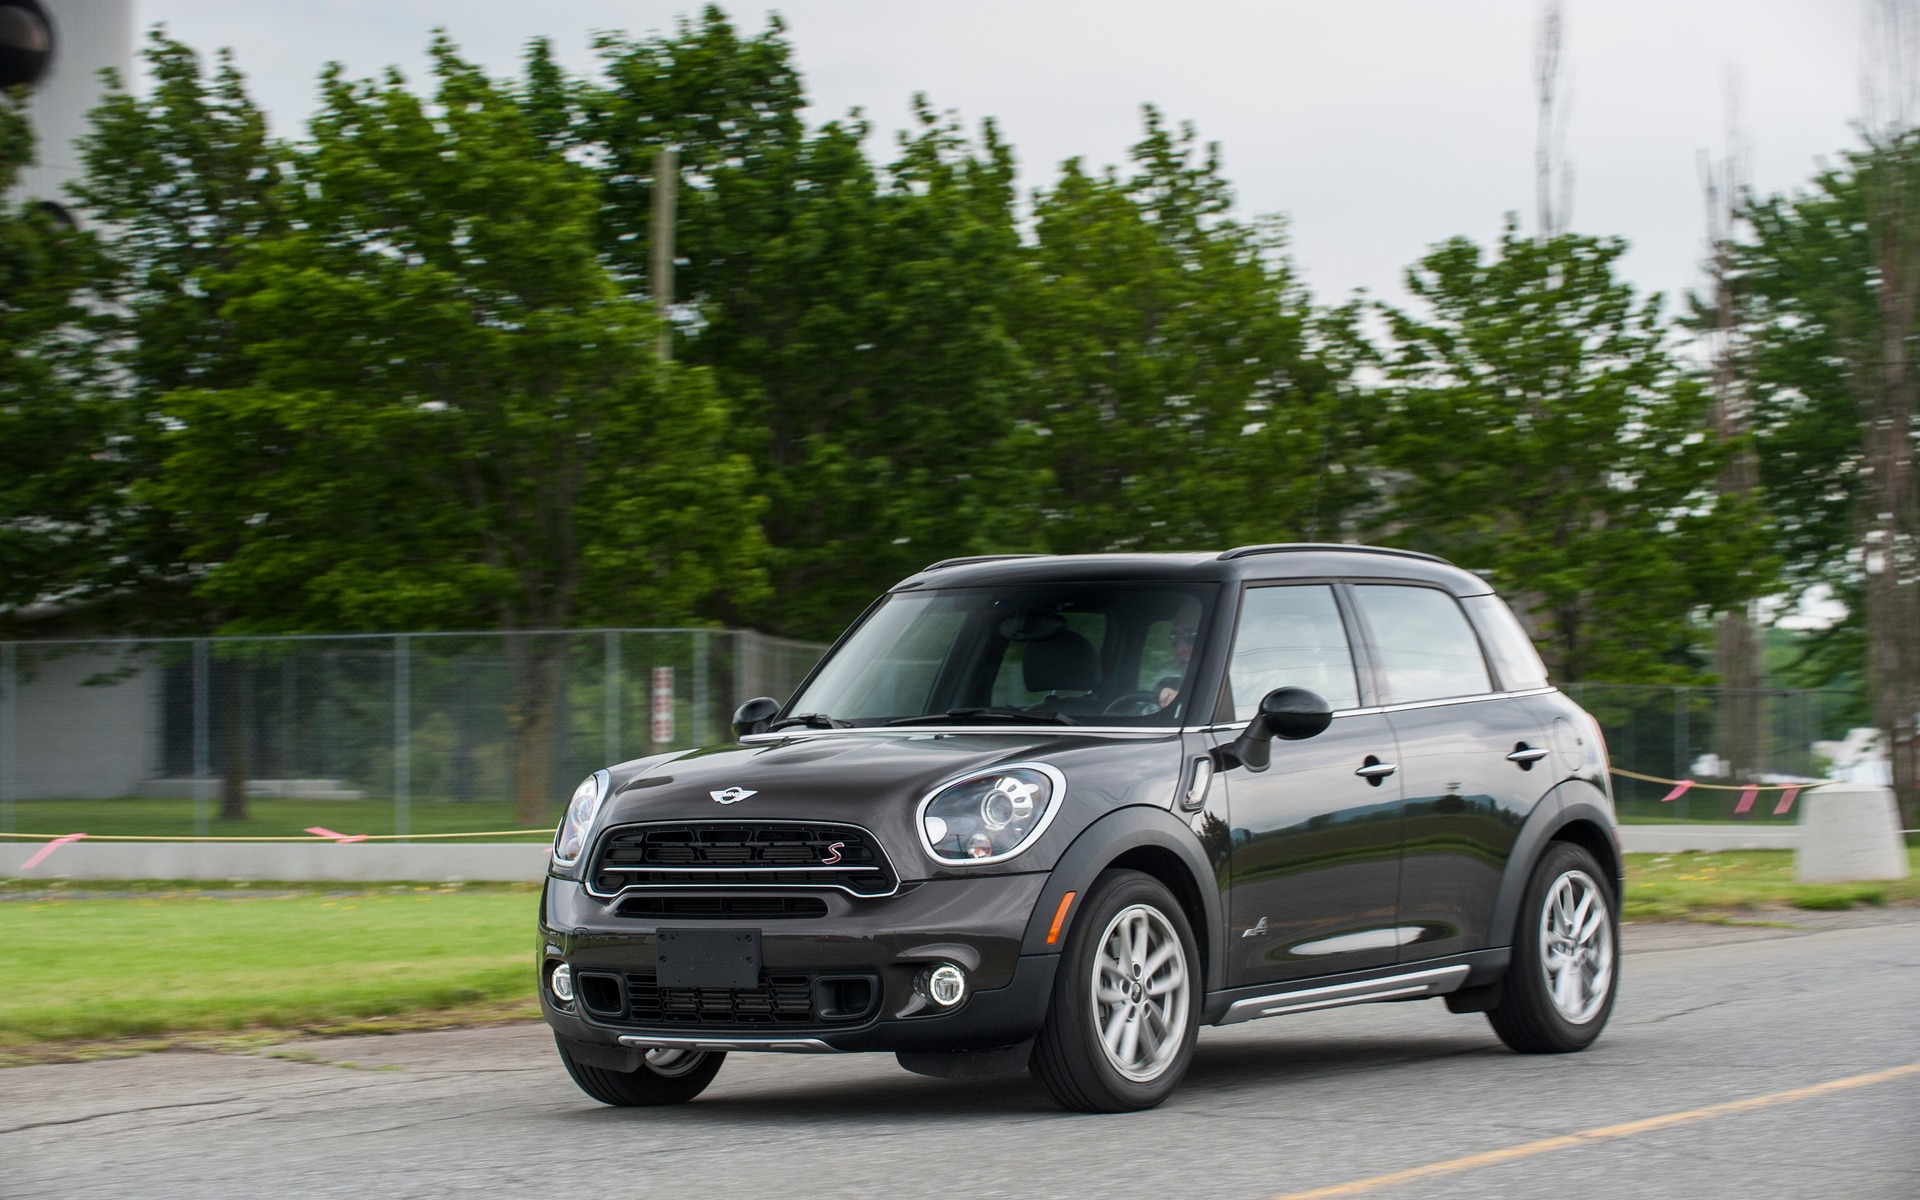 2016 Mini Countryman News Reviews Picture Galleries And Videos